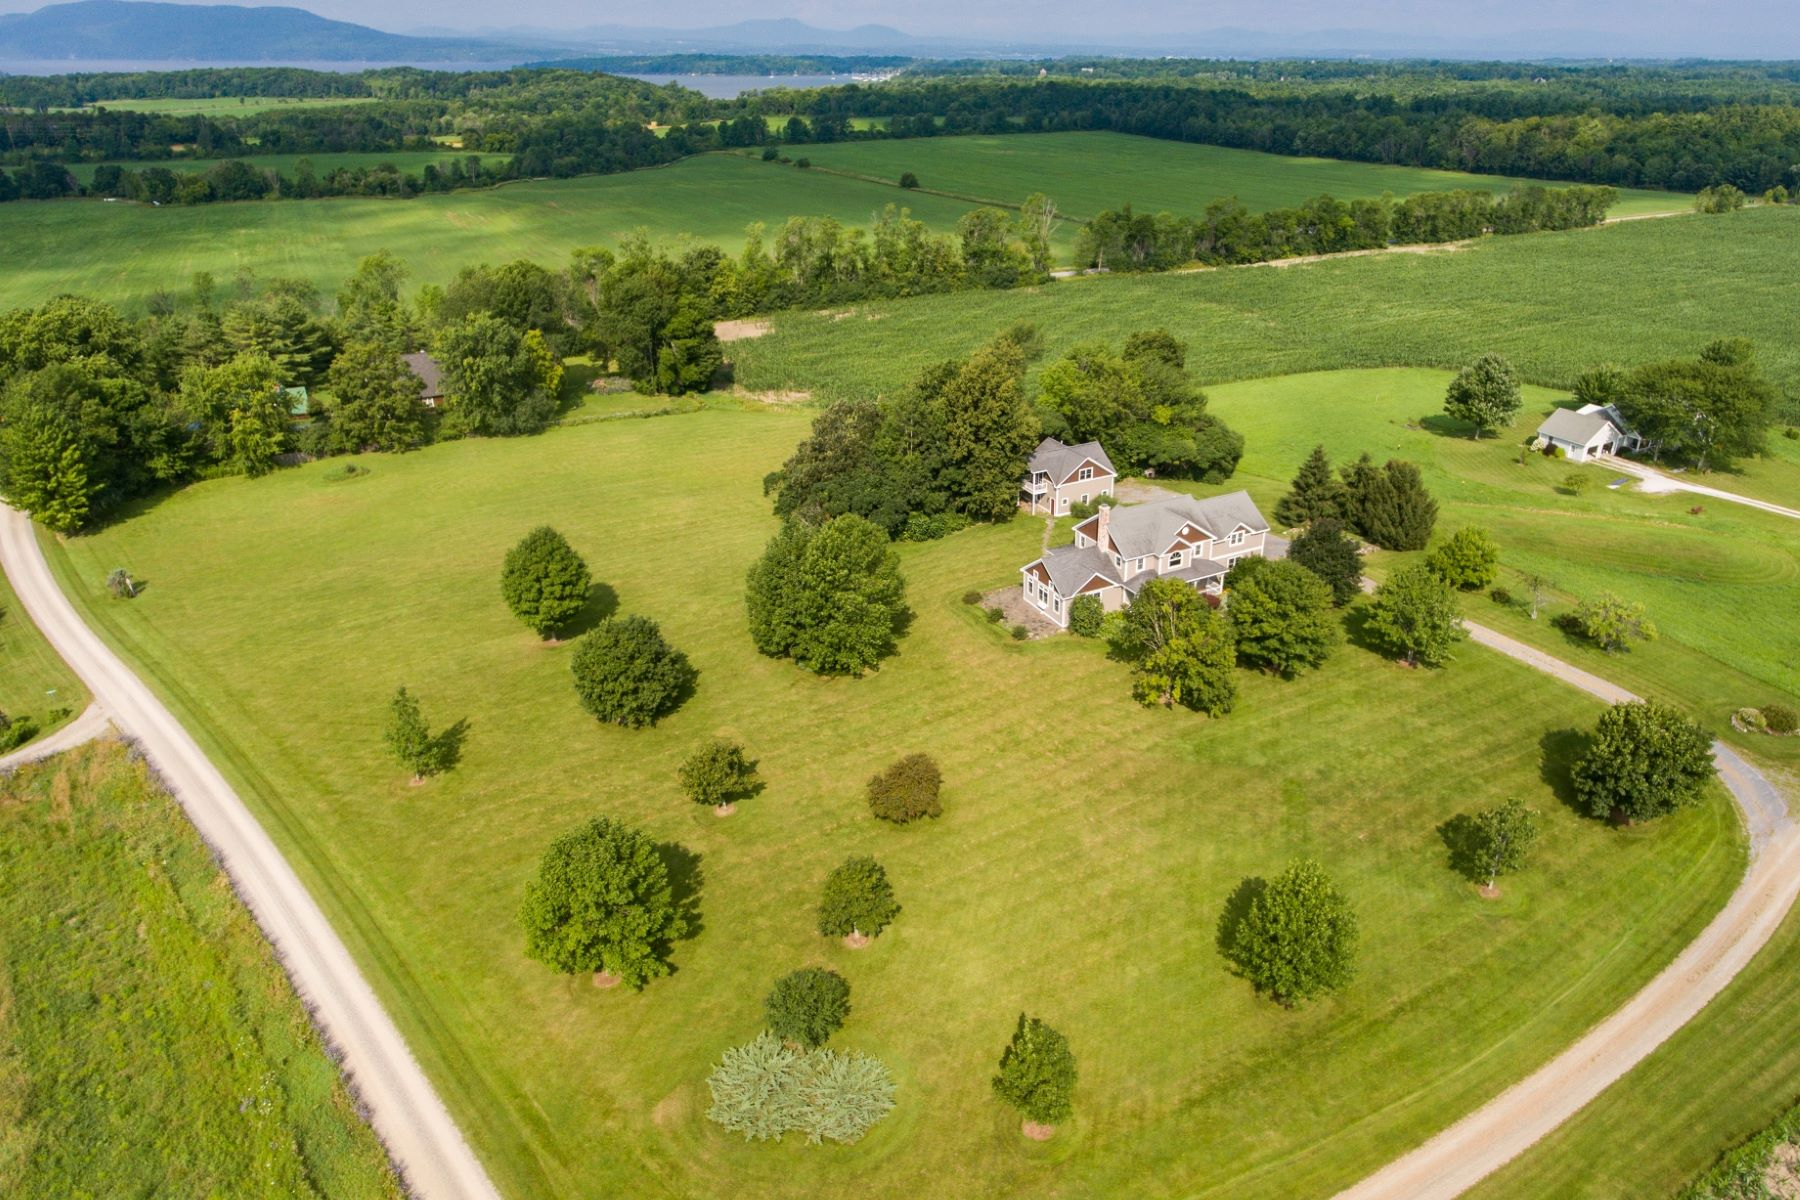 Single Family Home for Sale at Classic Charlotte Vermont Home on 5 Acres 37 Coyote Ln Charlotte, Vermont, 05445 United States